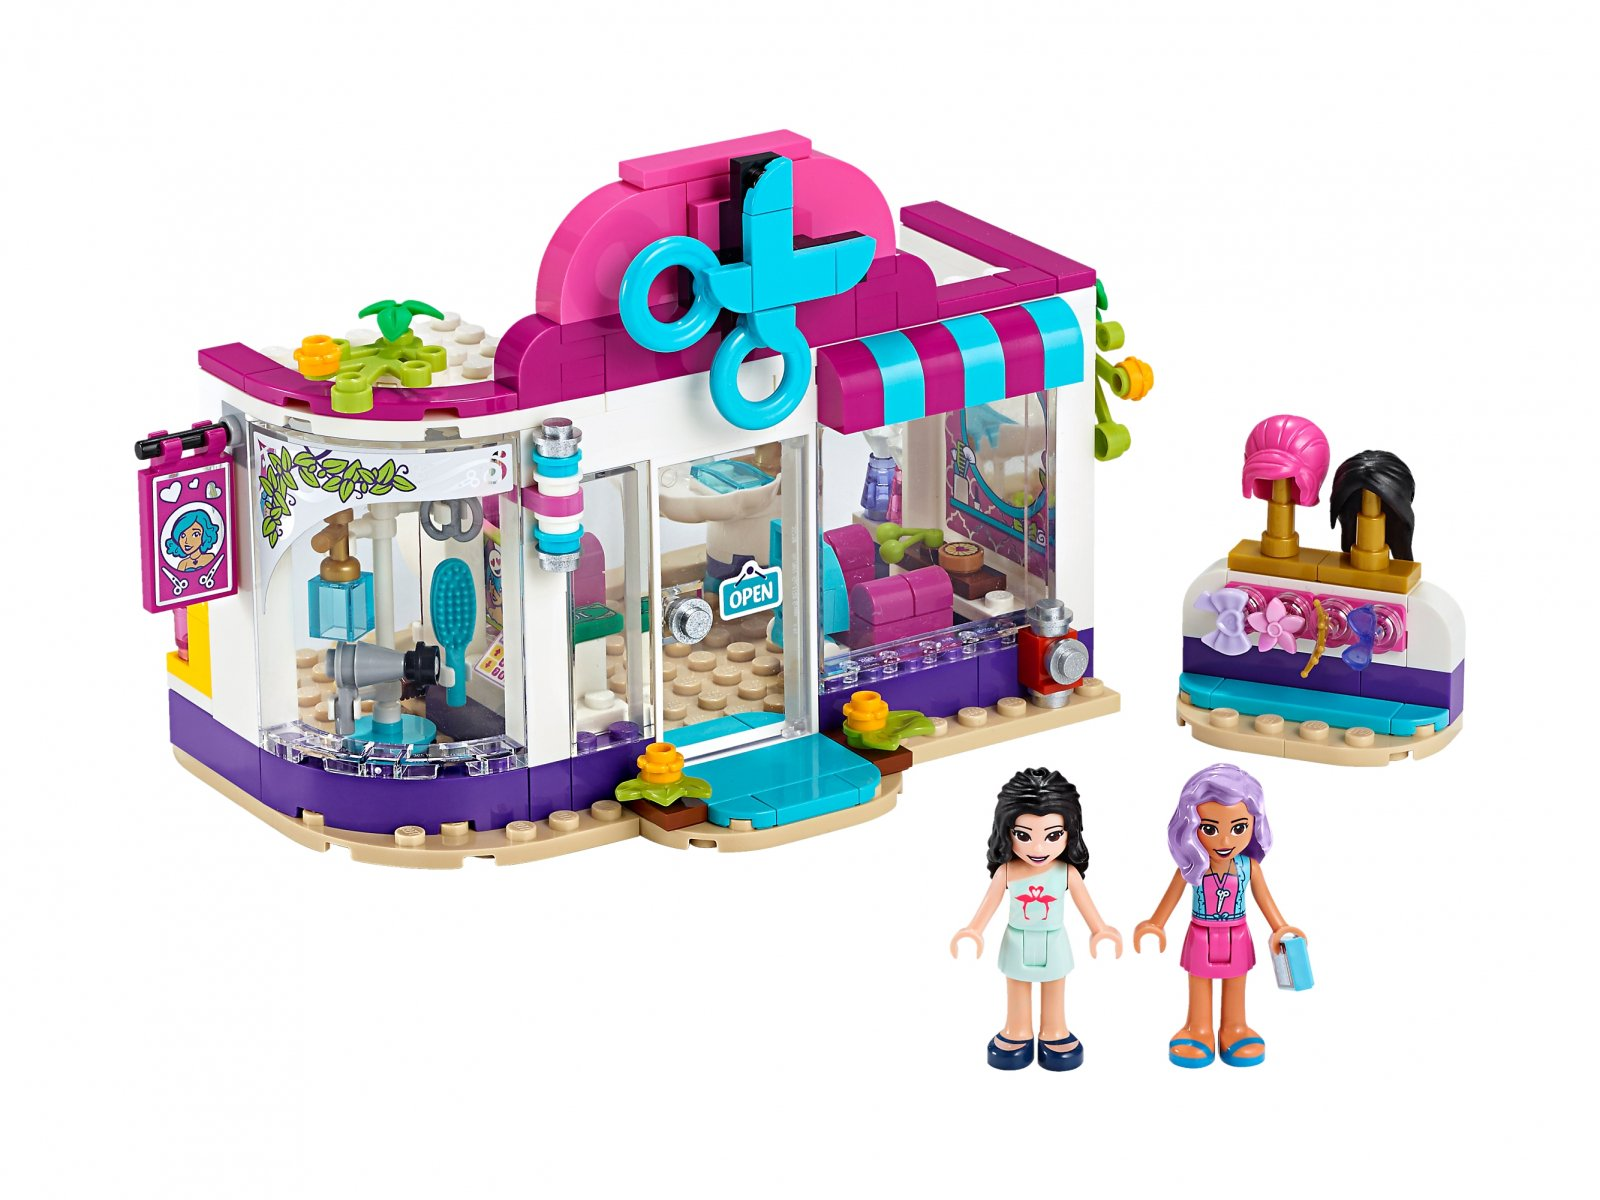 LEGO Friends 41391 Salon fryzjerski w Heartlake